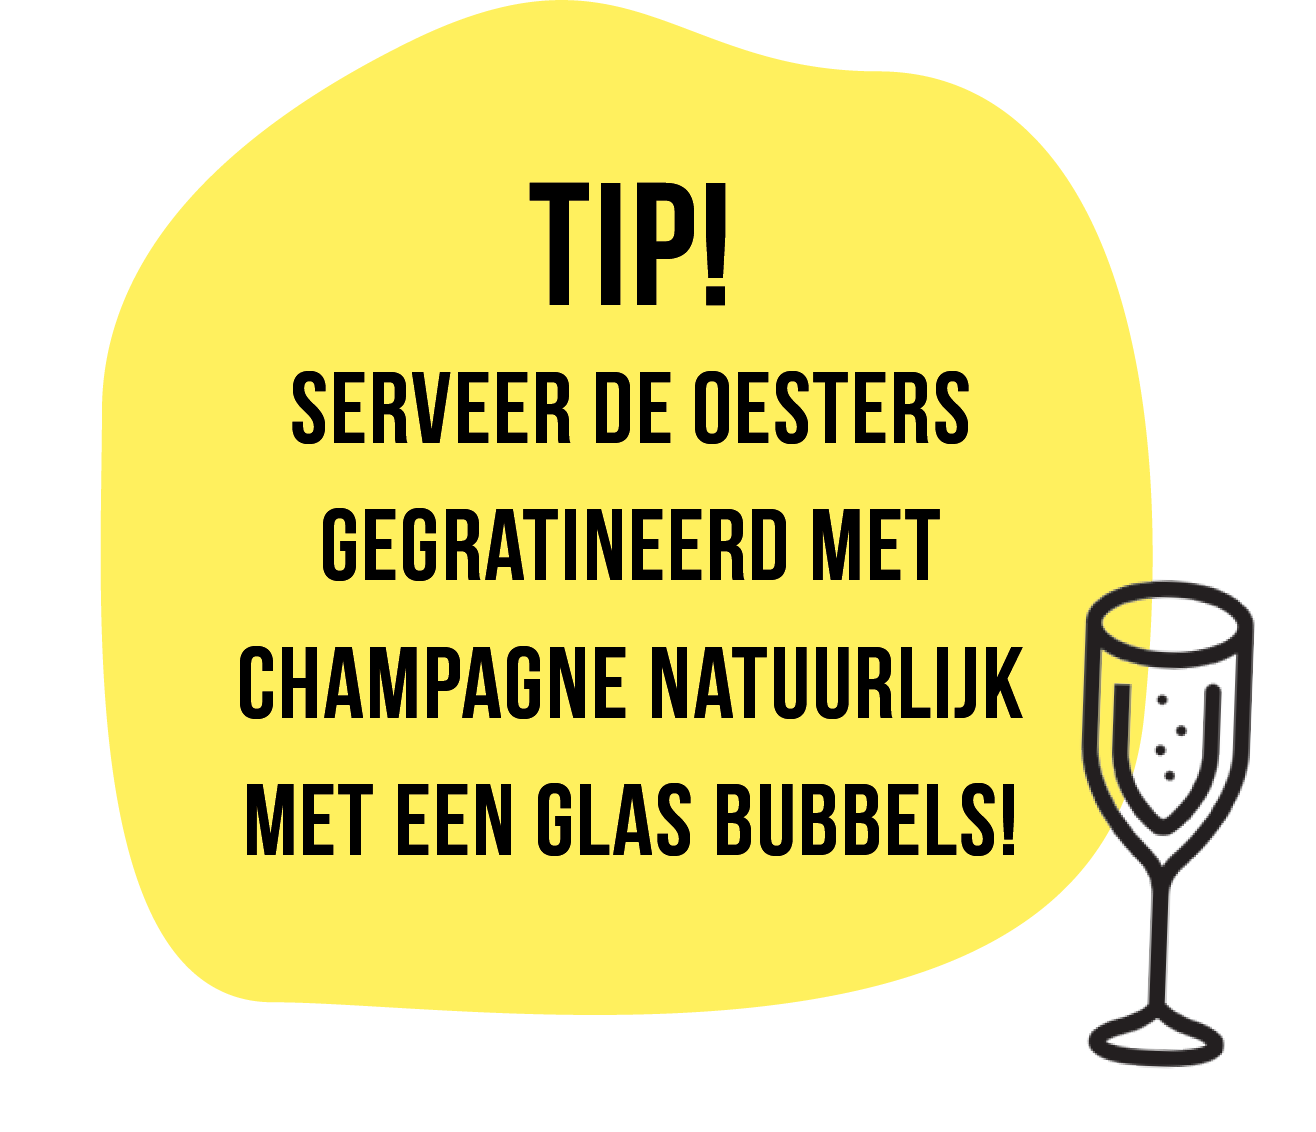 Oester tip champagne